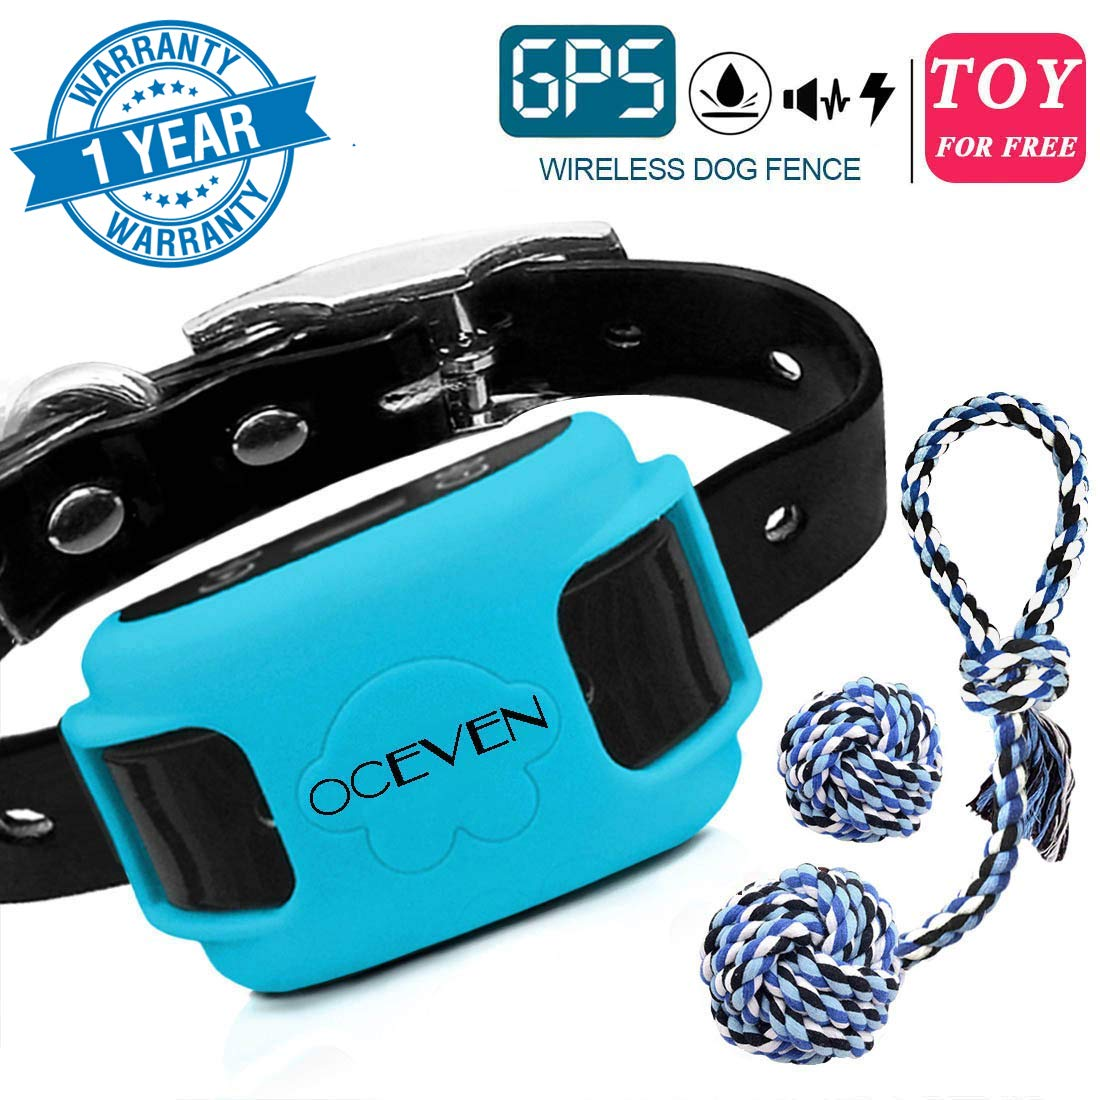 OCEVEN Wireless Dog Fence System with GPS, Outdoor Pet Containment System Rechargeable Waterproof Collar EF851S, bluee, for 15lbs-120lbs Dogs with 2pcs Toys for Free